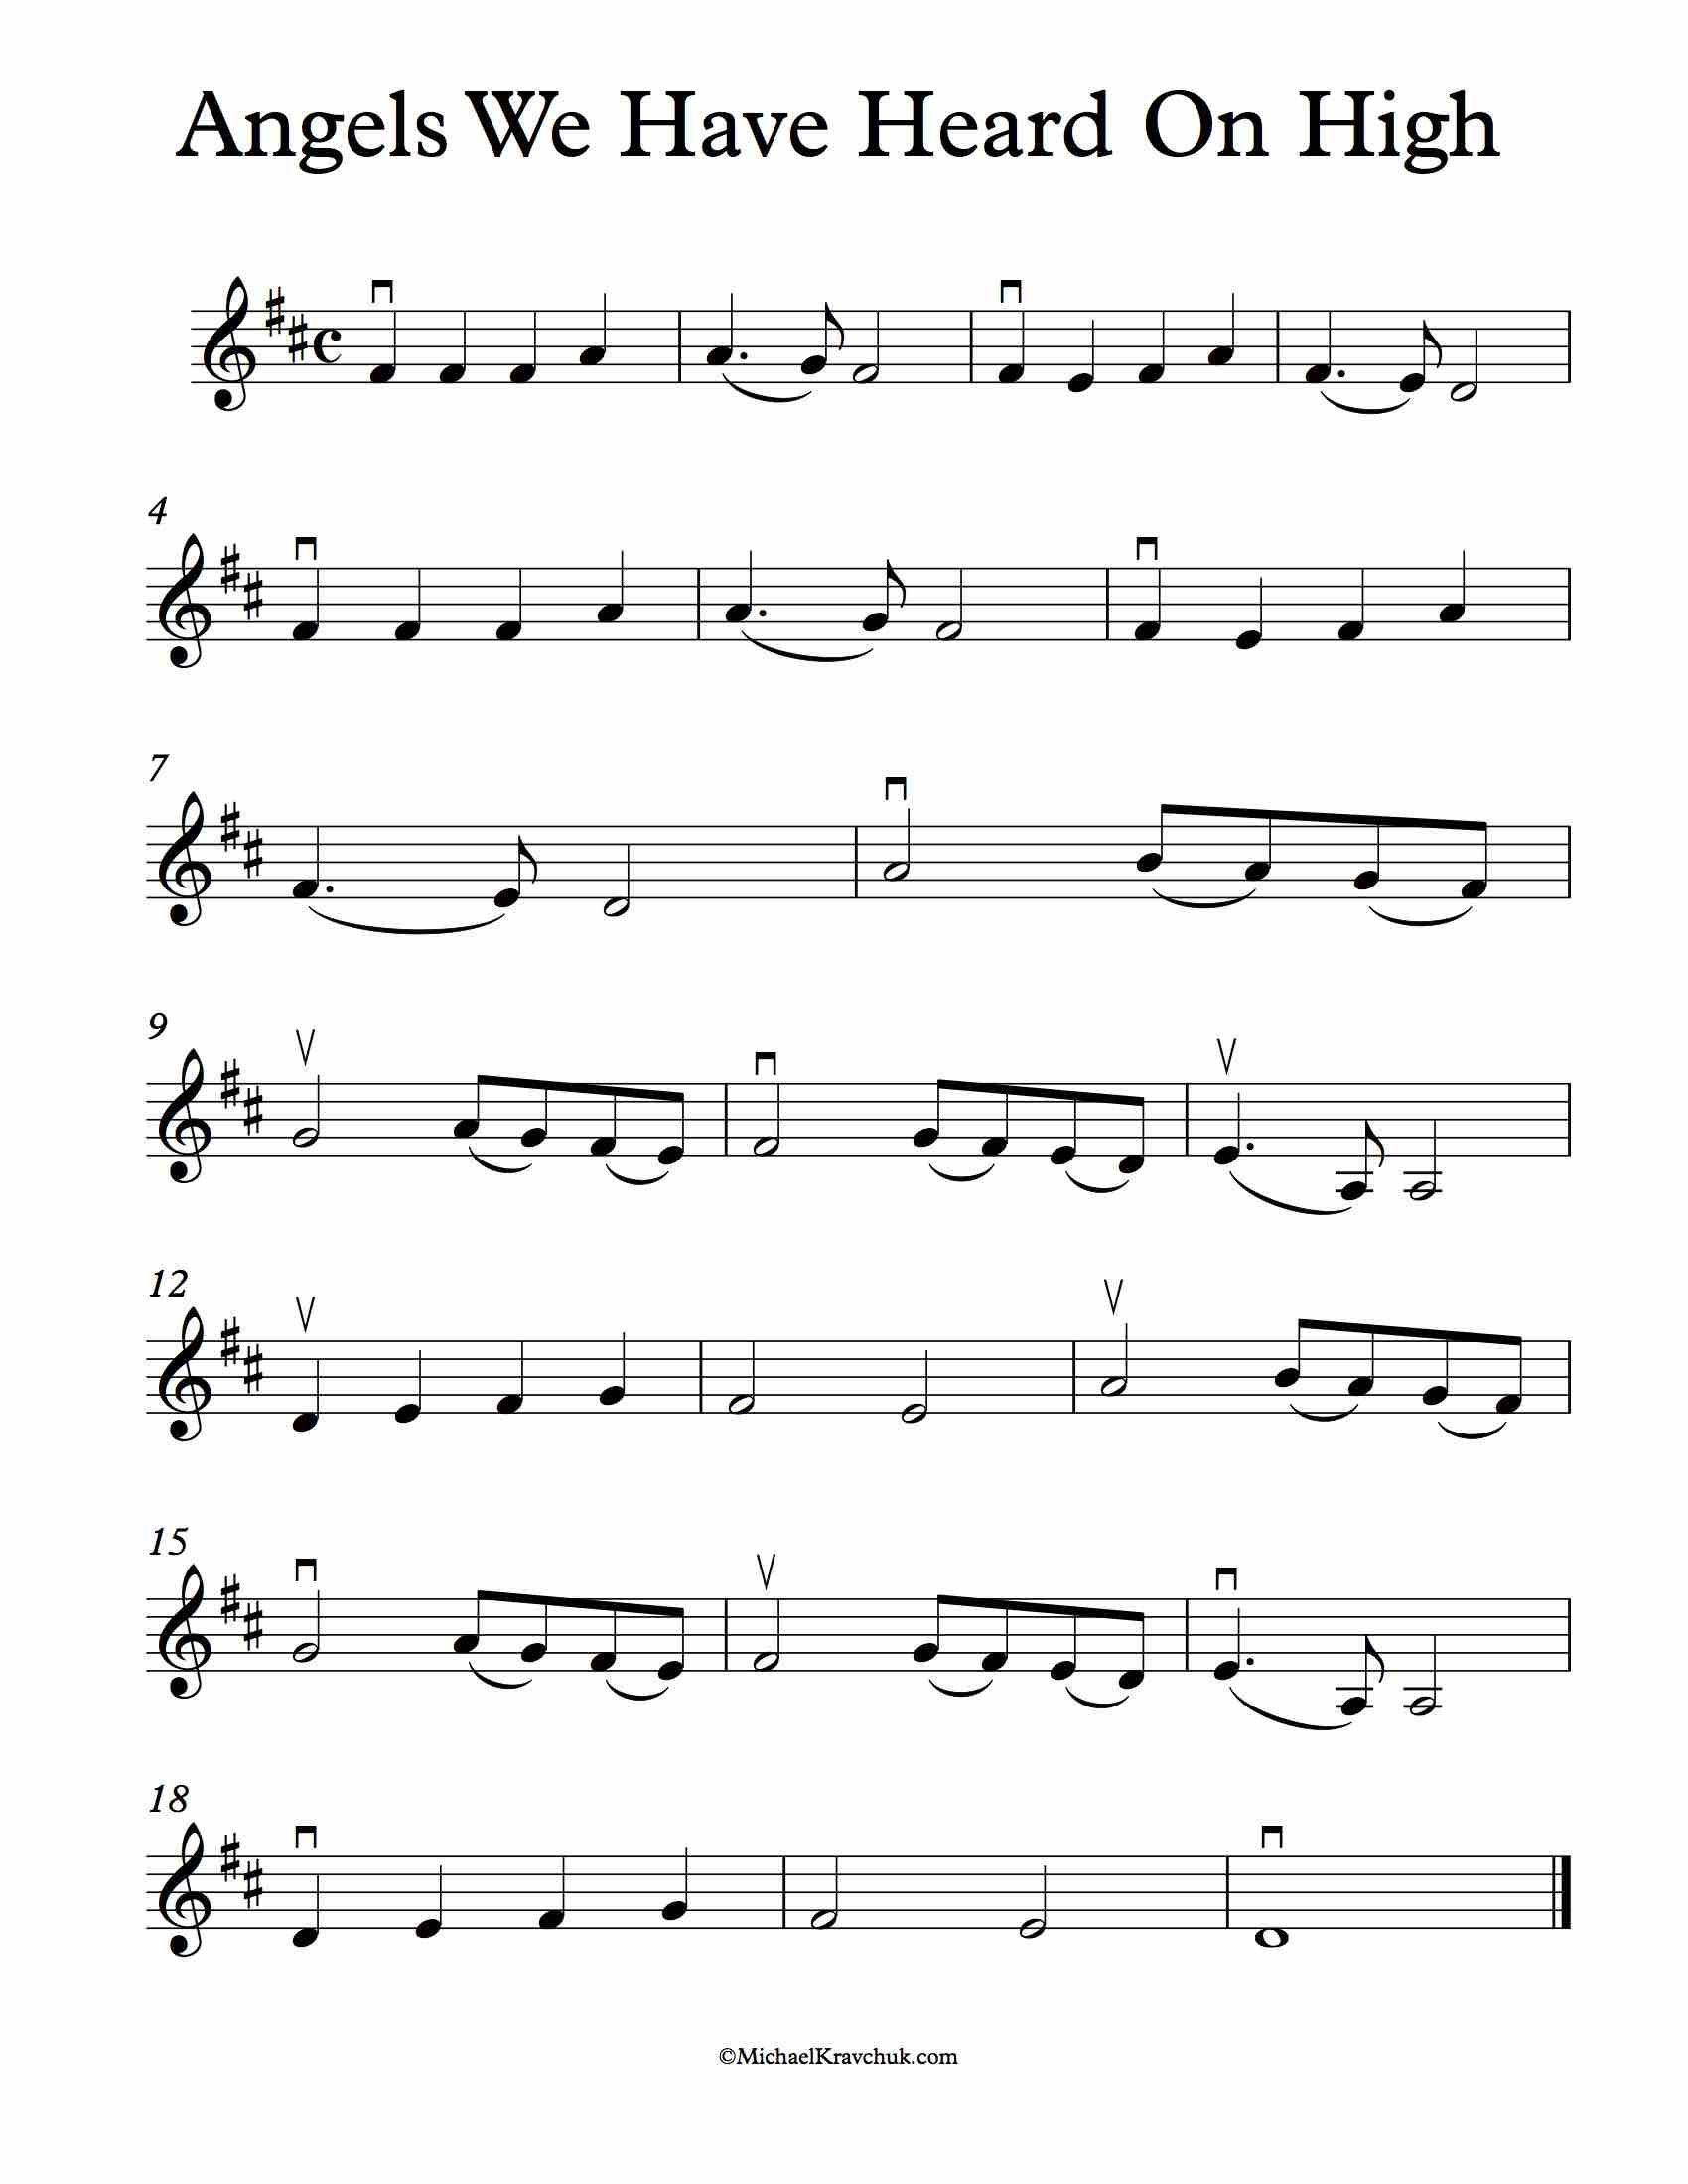 Angels we have heard on high sheet music violin d major music angels we have heard on high sheet music violin d major hexwebz Gallery